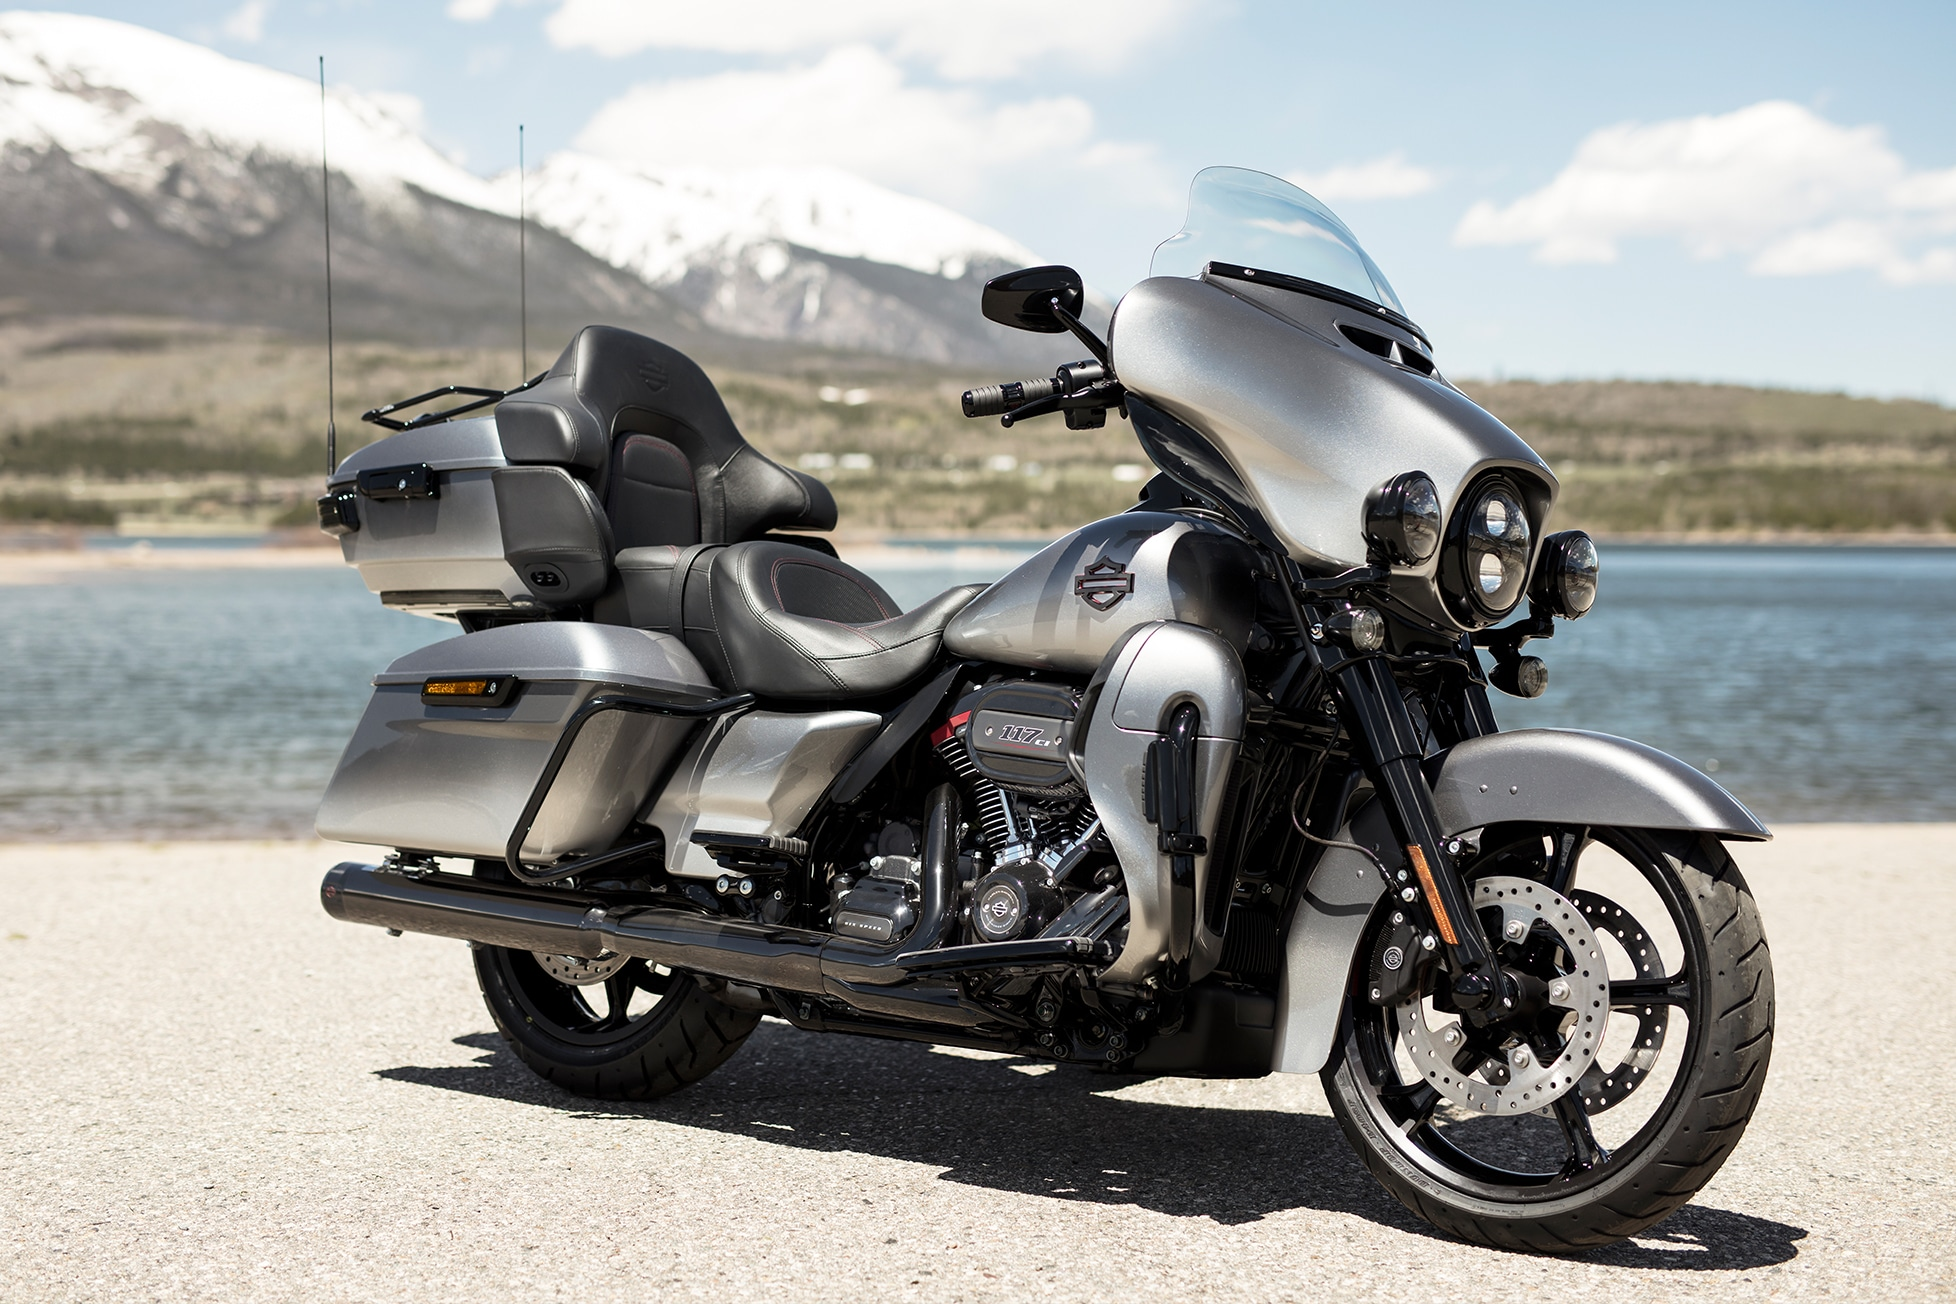 2019 CVO Limited motorcycle parked by mountain scenery